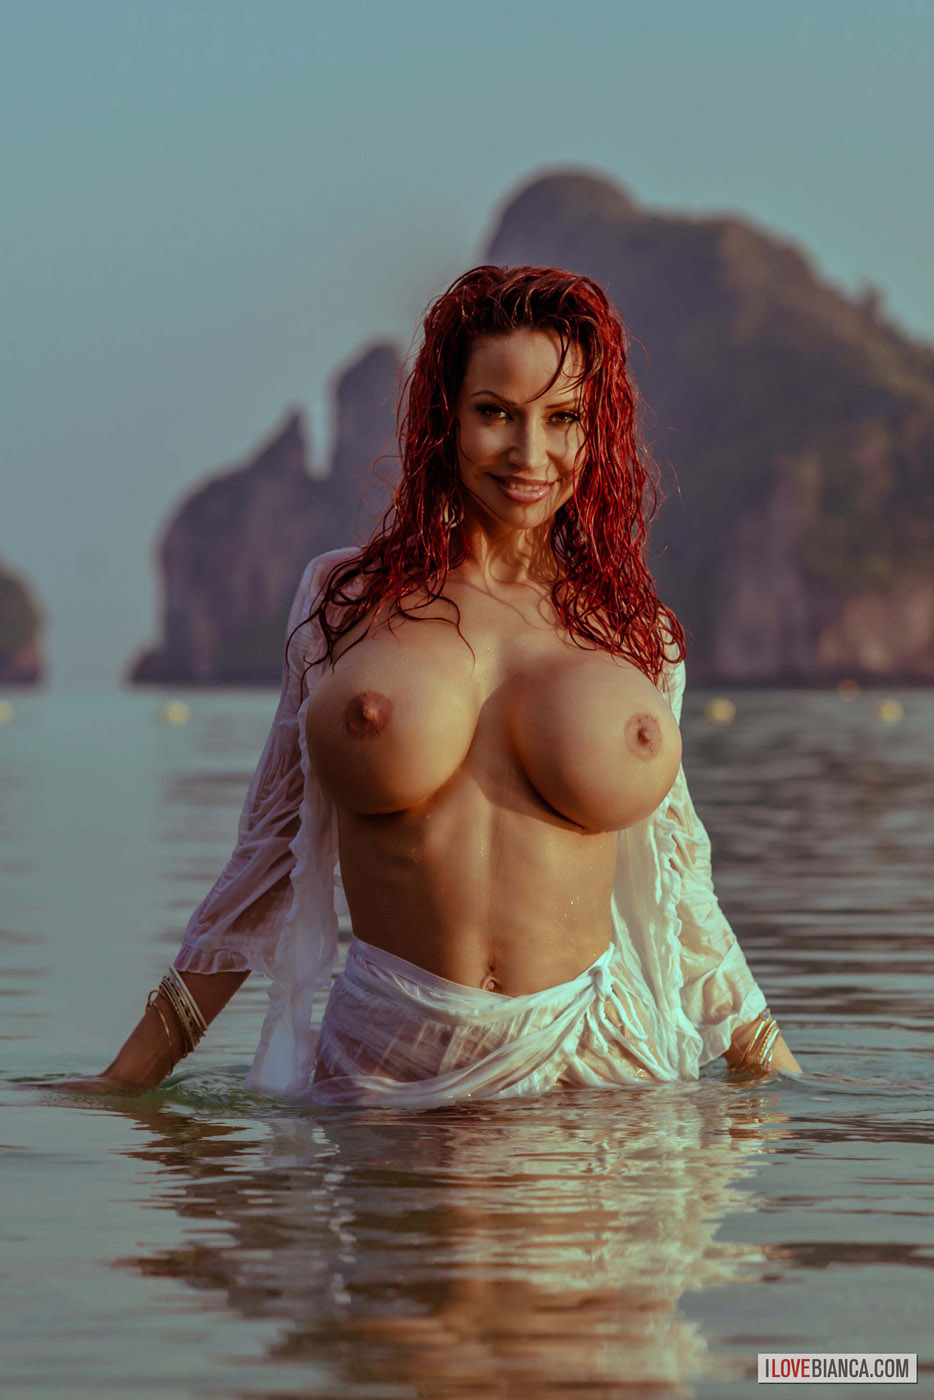 Confirm. All Bianca beauchamp wet and naked are mistaken